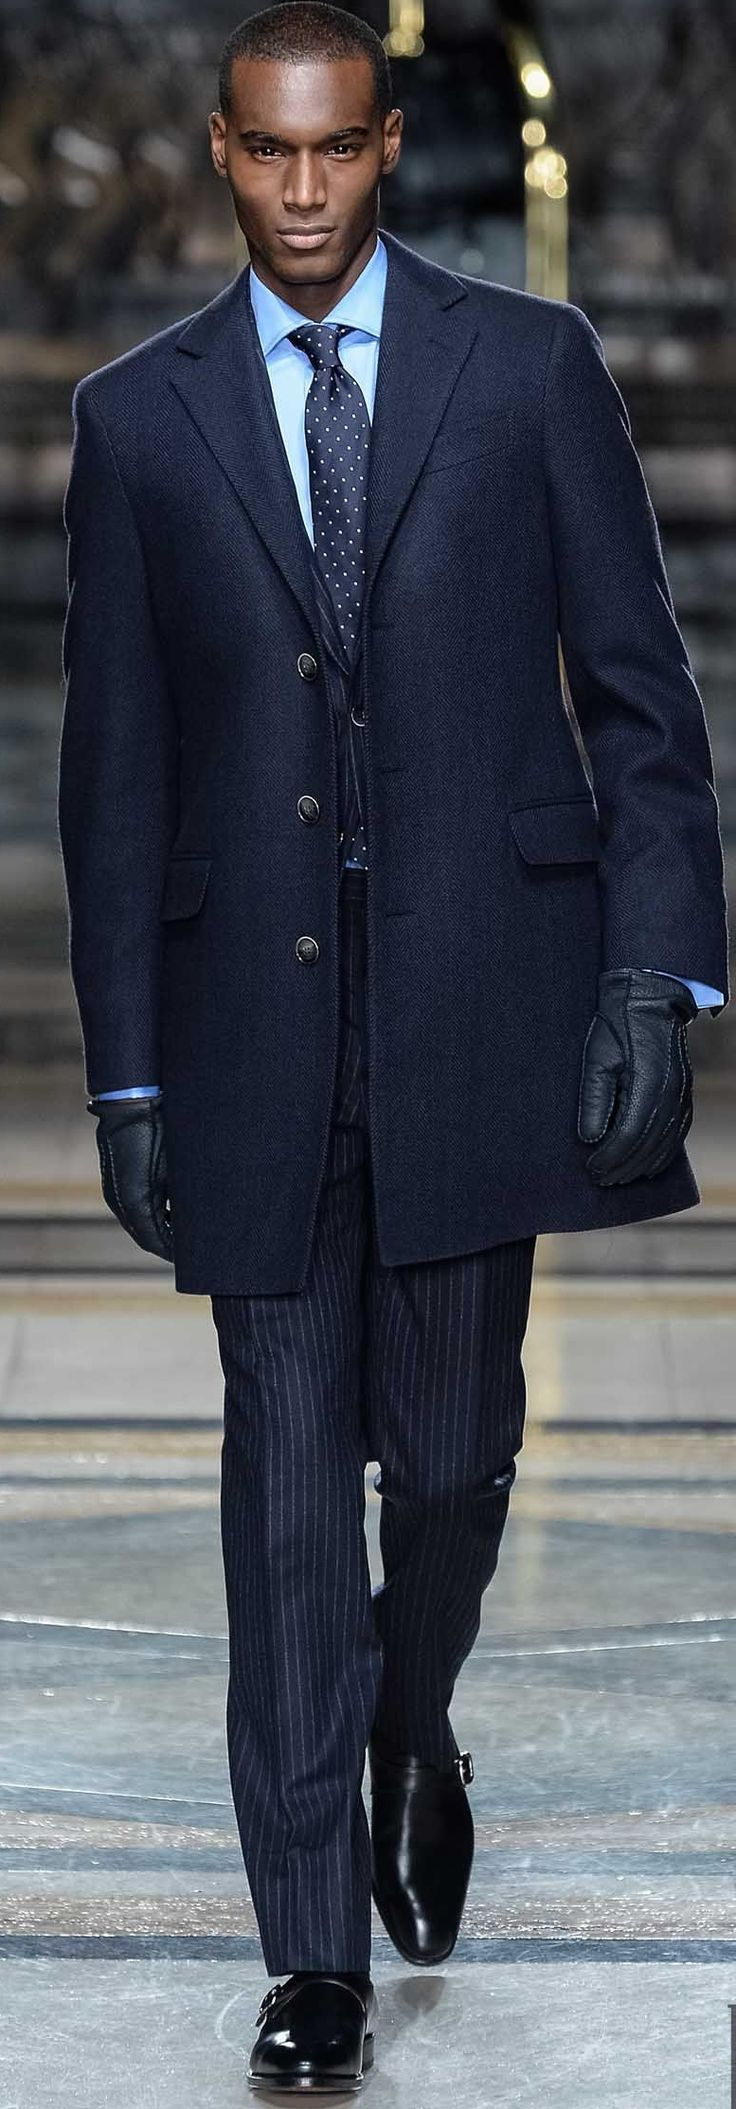 Hackett London. More suits, style and fashion for men @ http://www.zeusfactor.com